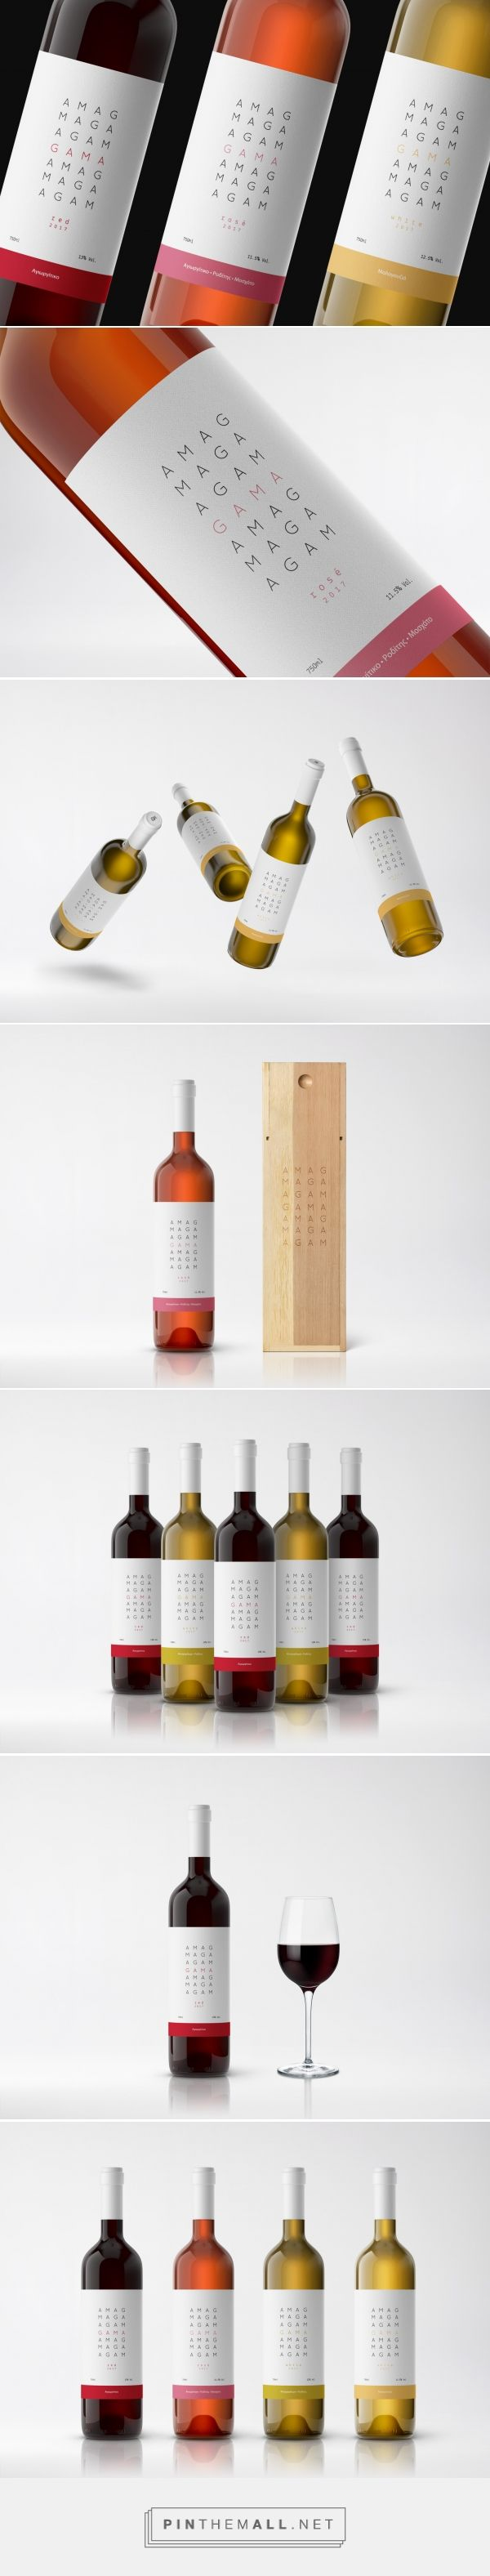 GAMA Wines - Packaging of the World - Creative Package Design Gallery - http://www.packagingoftheworld.com/2017/08/gama-wines.html